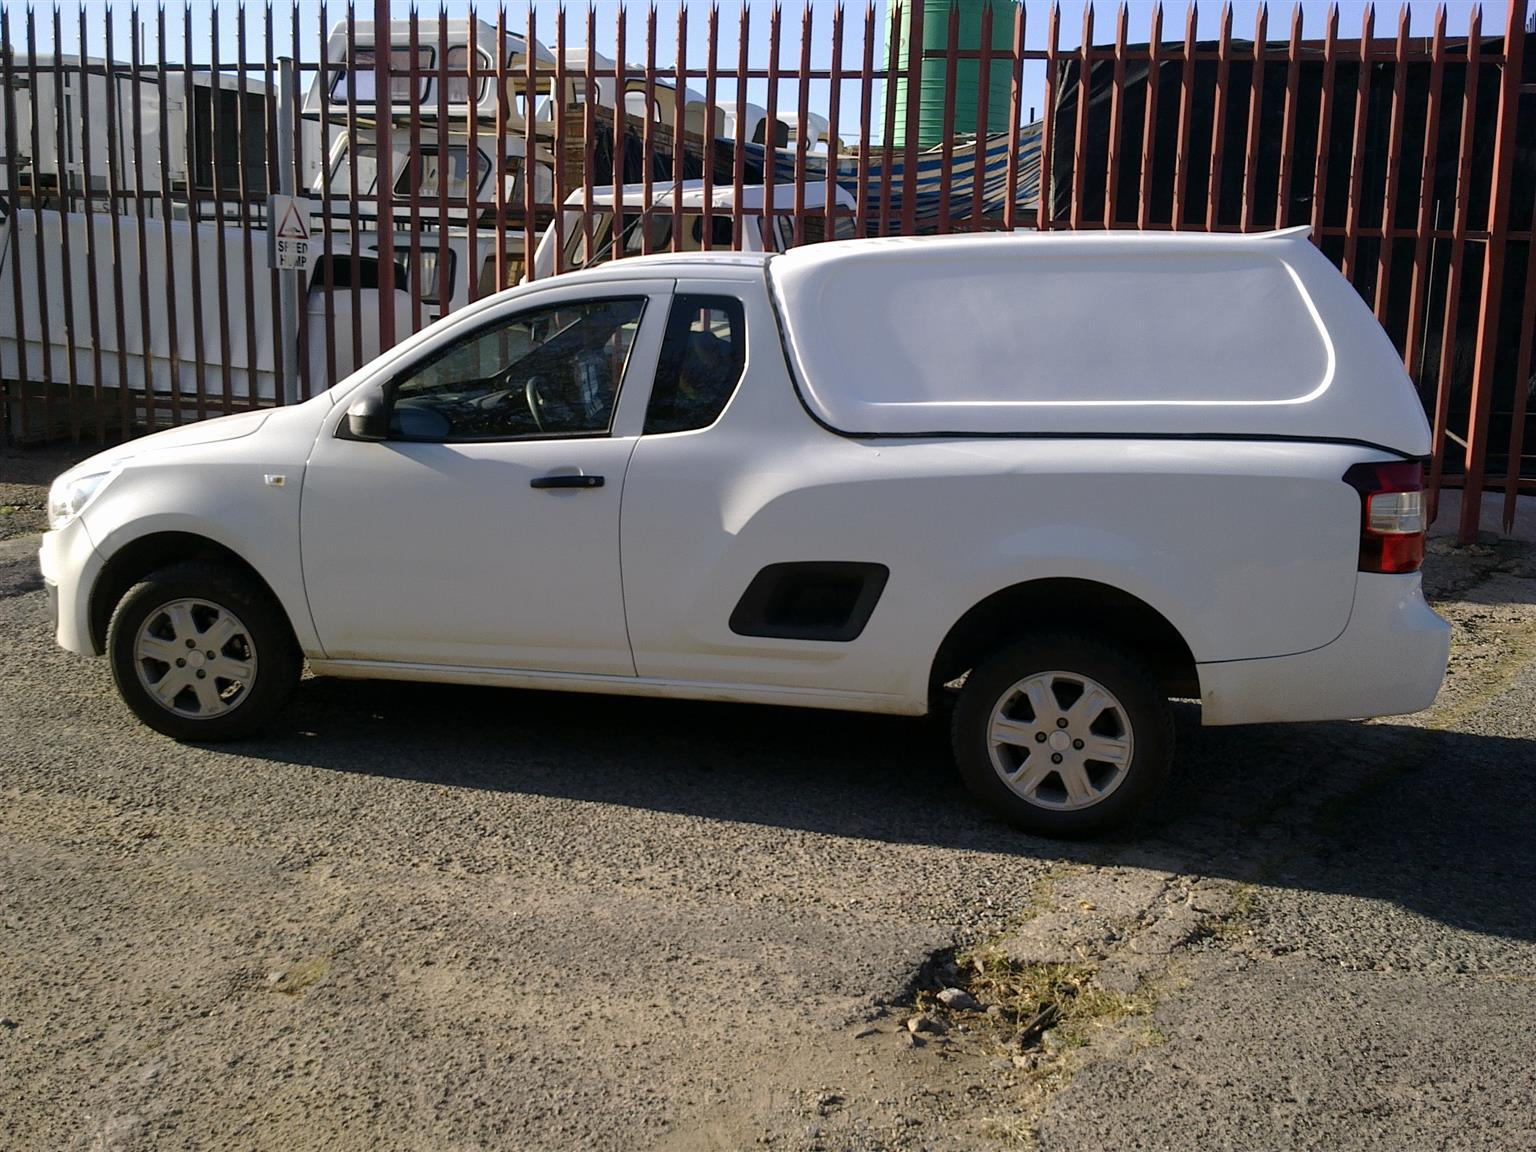 BRAND NEW GC CHEVROLET UTILITY BLINDSIDE BAKKIE CANOPY FOR SALE!!!!!!!!!